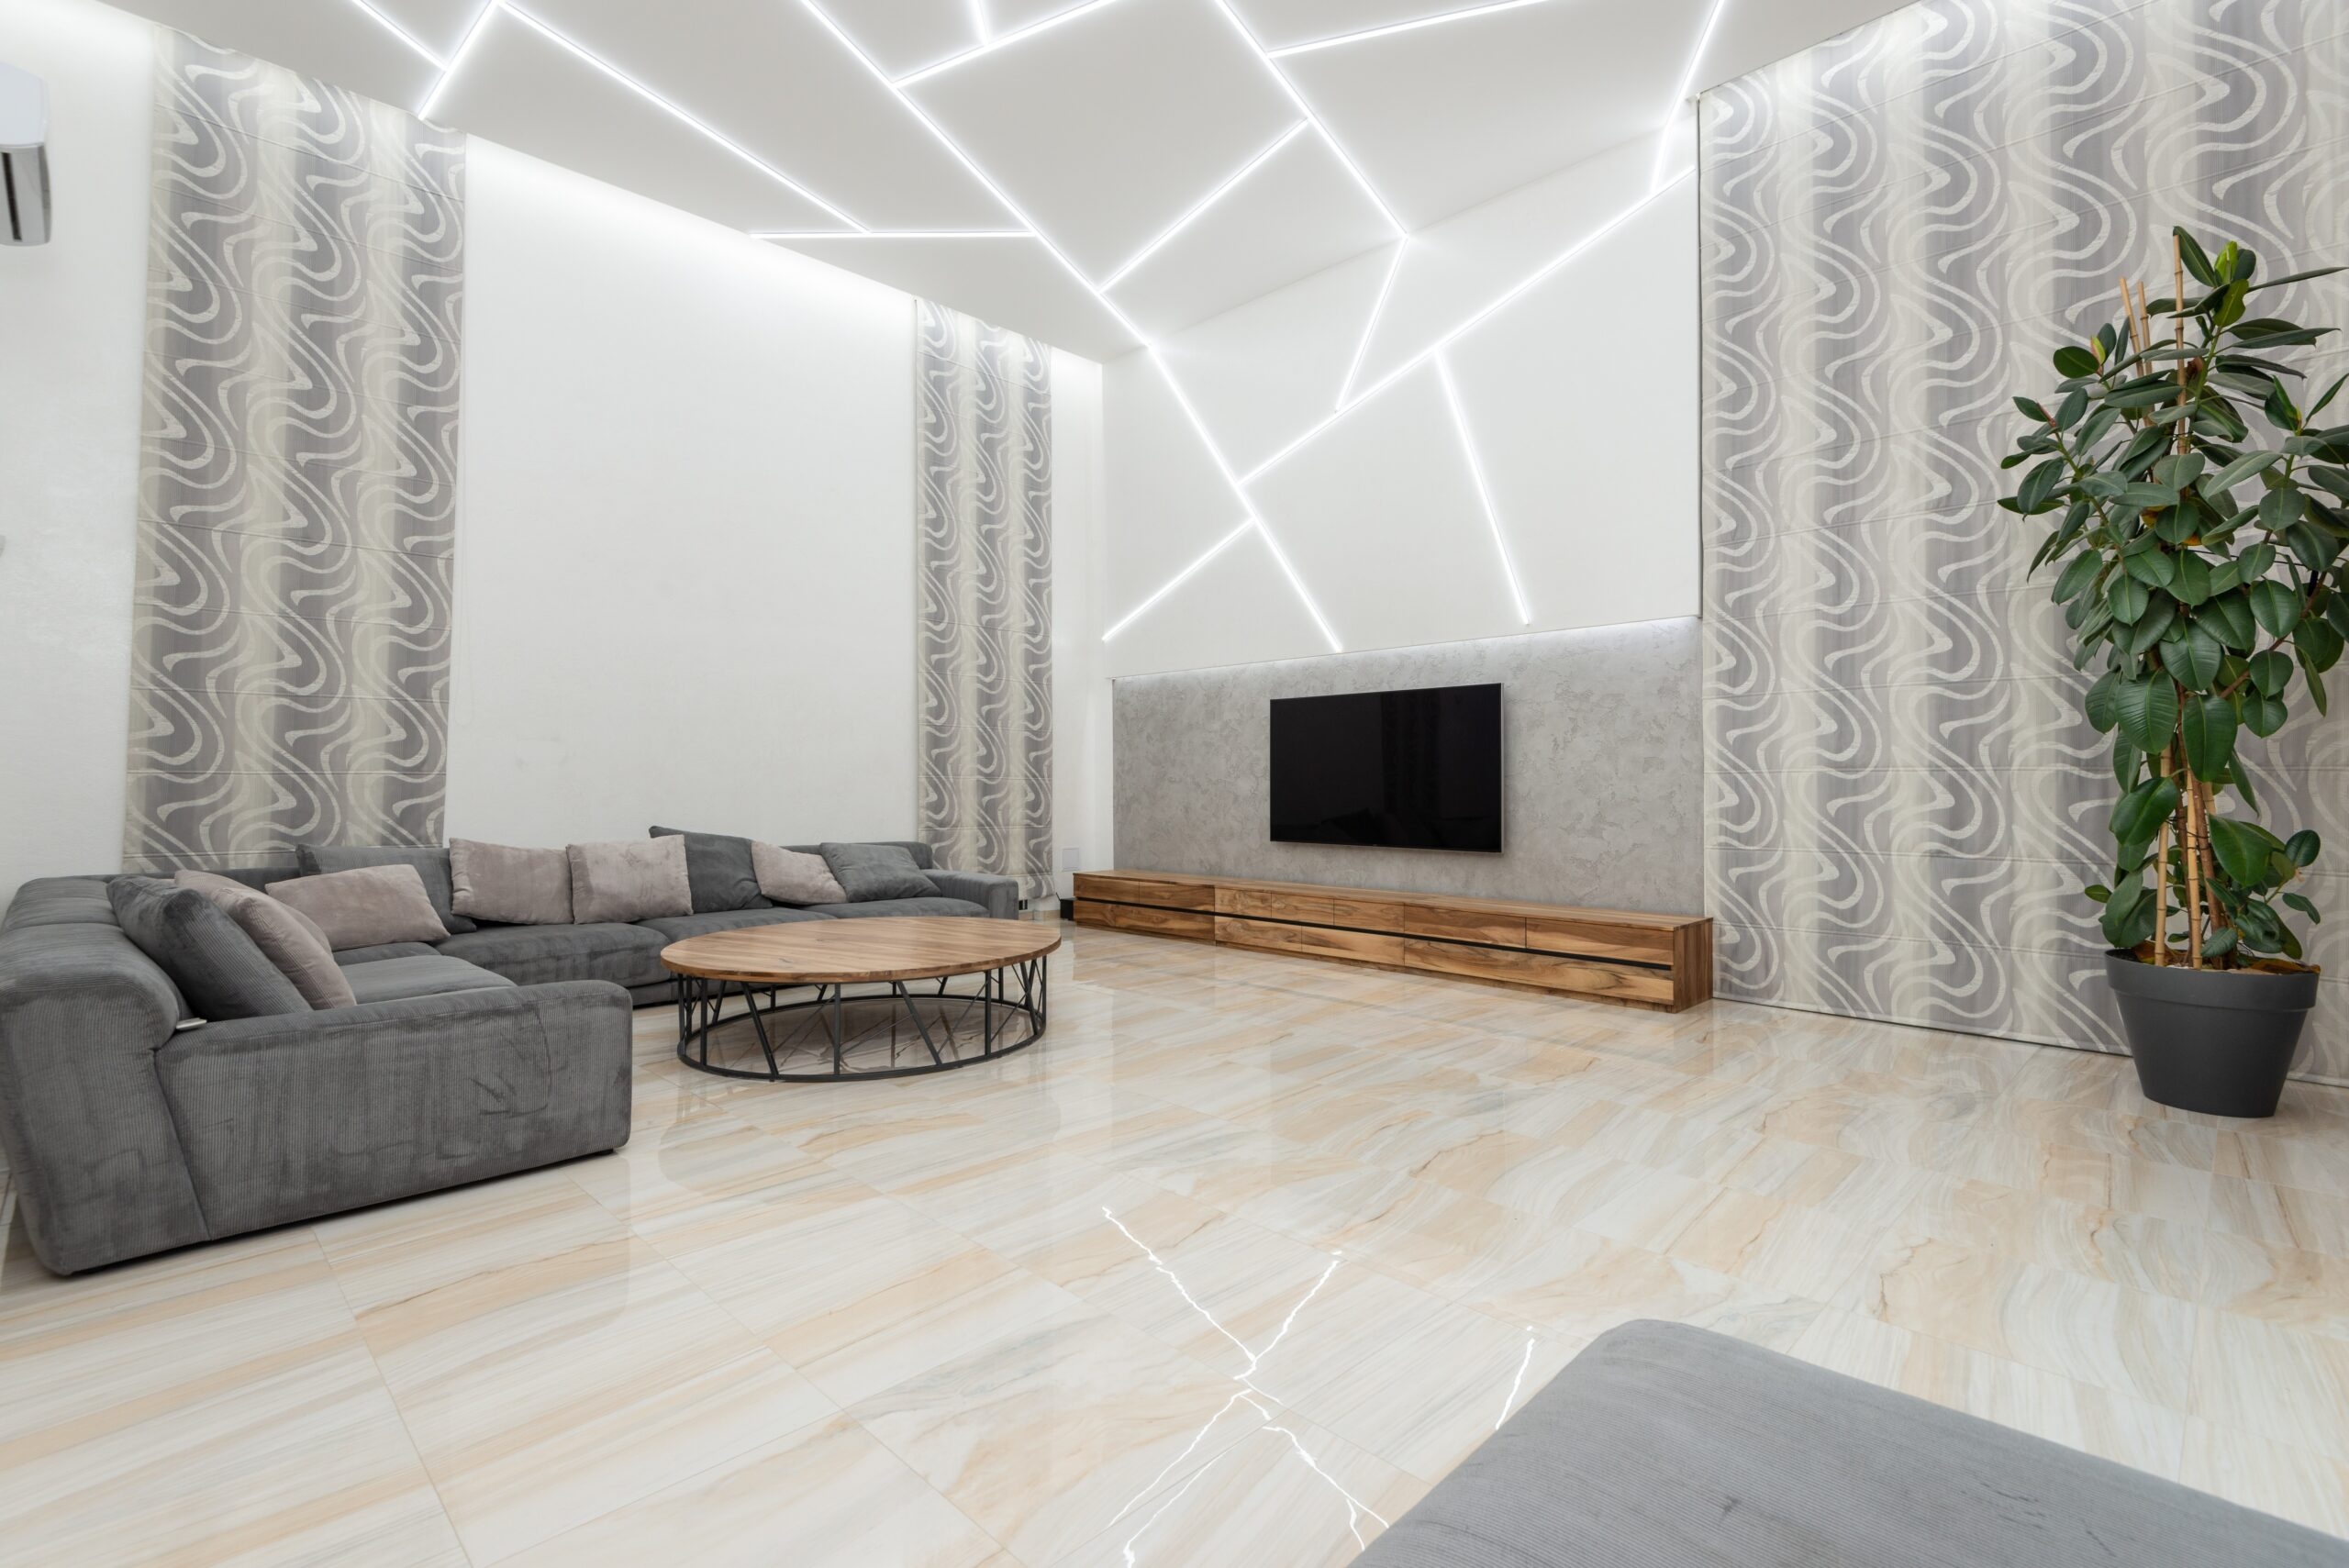 A living room with crooked pattern on ceiling with white lights